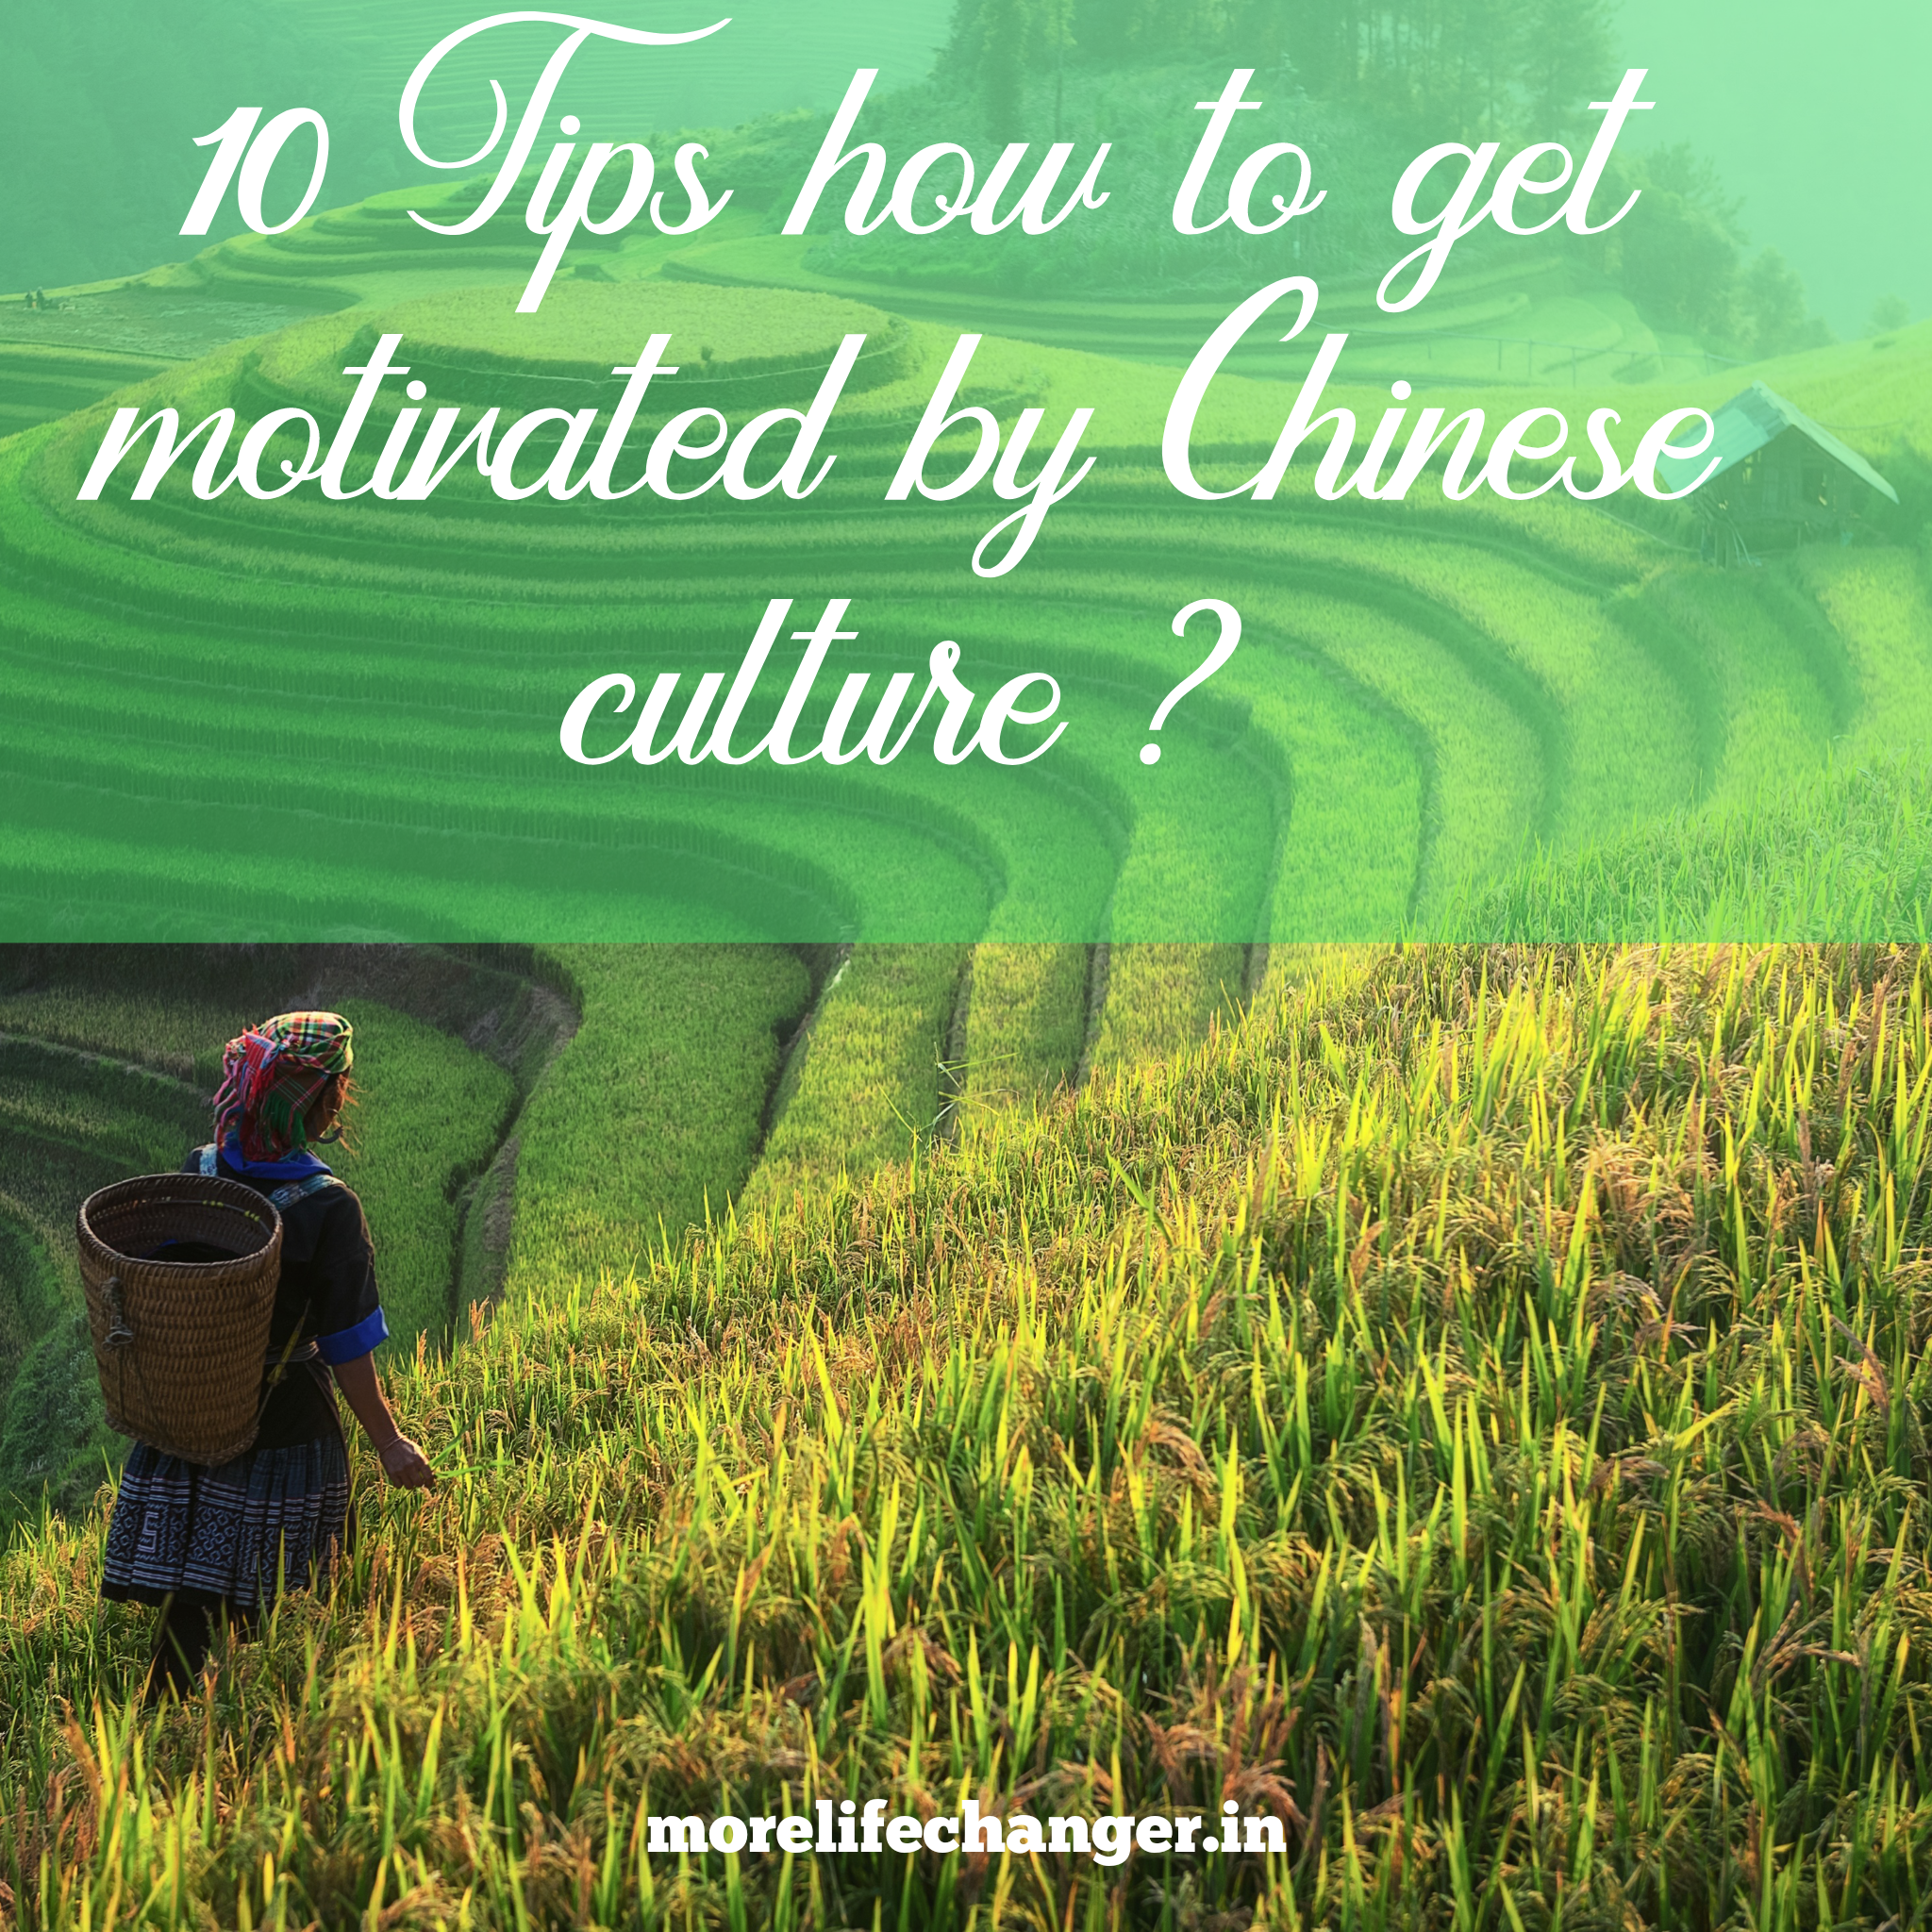 How to get motivated by Chinese culture